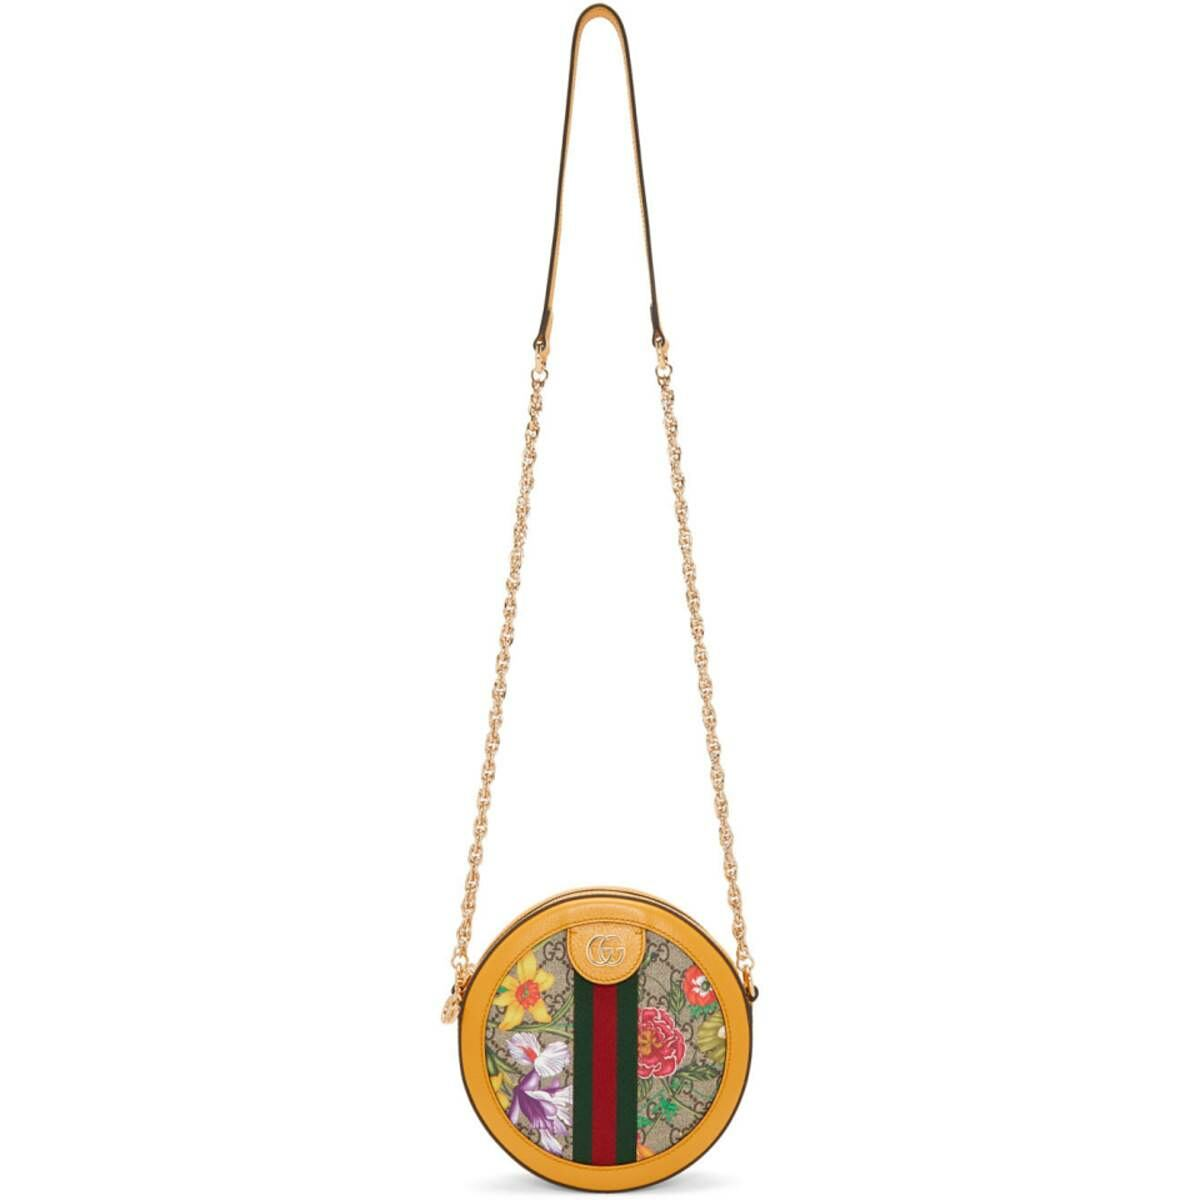 Gucci Yellow and Multicolor Mini Round Ophidia Bag Ssense USA WOMEN Women ACCESSORIES Womens BAGS